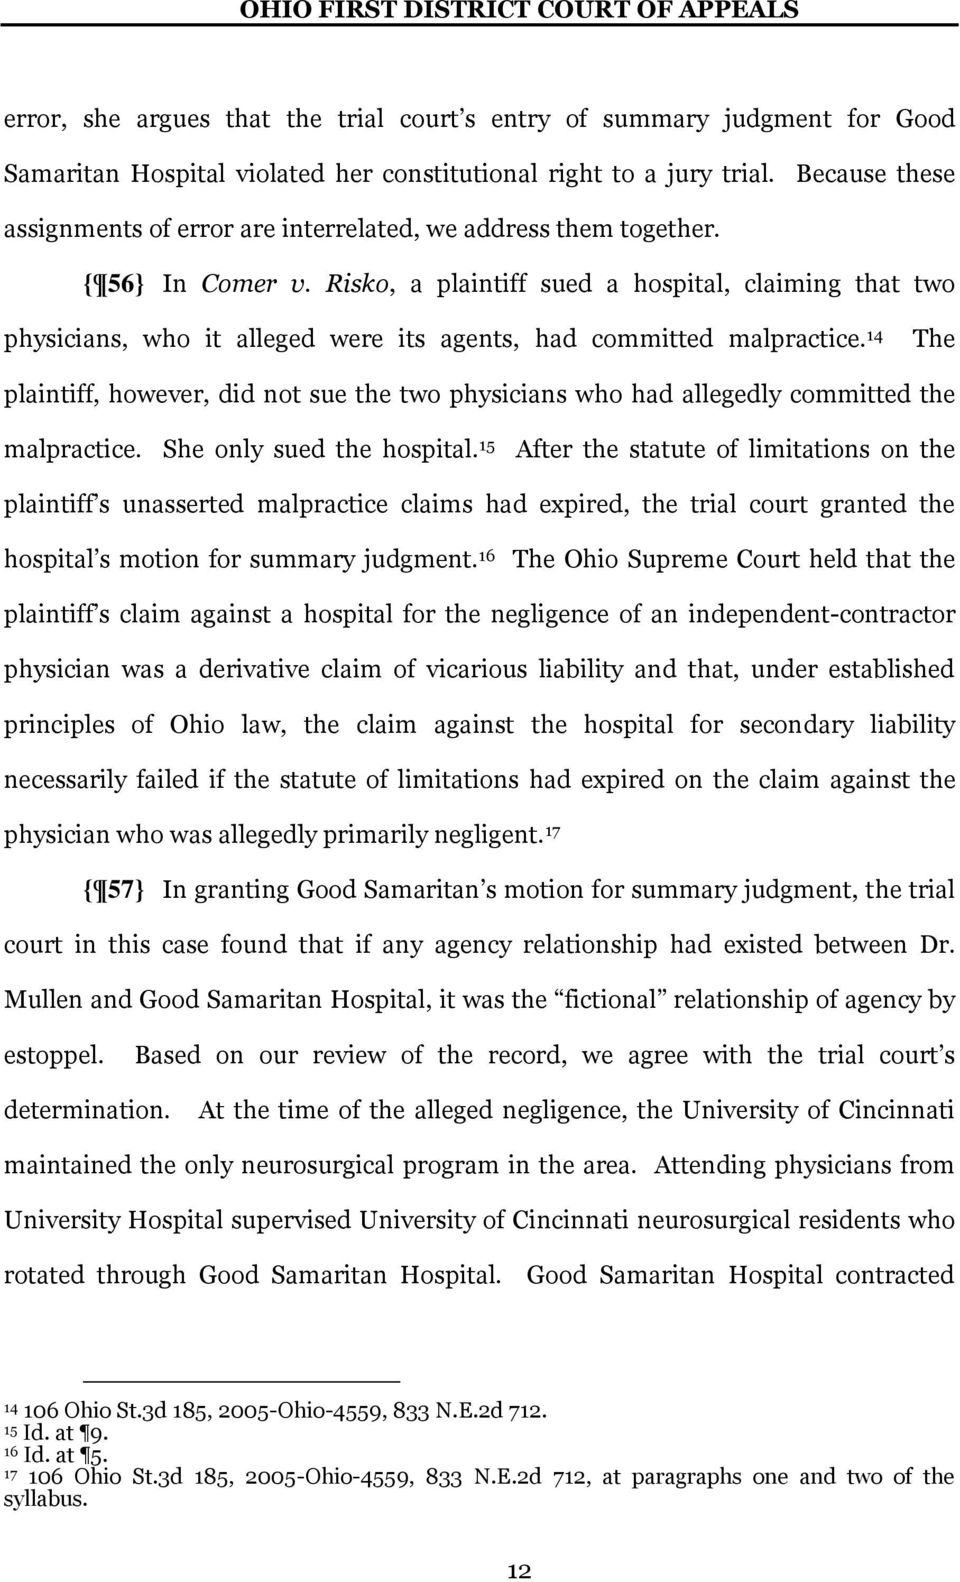 Risko, a plaintiff sued a hospital, claiming that two physicians, who it alleged were its agents, had committed malpractice.